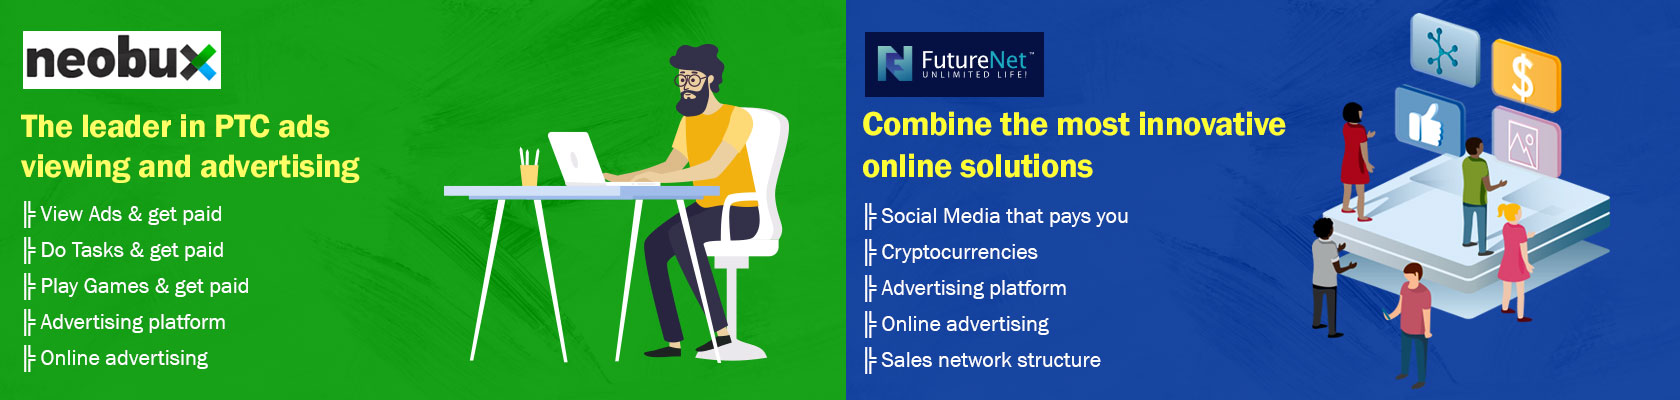 neobux-and-futurenet-guide-in-english